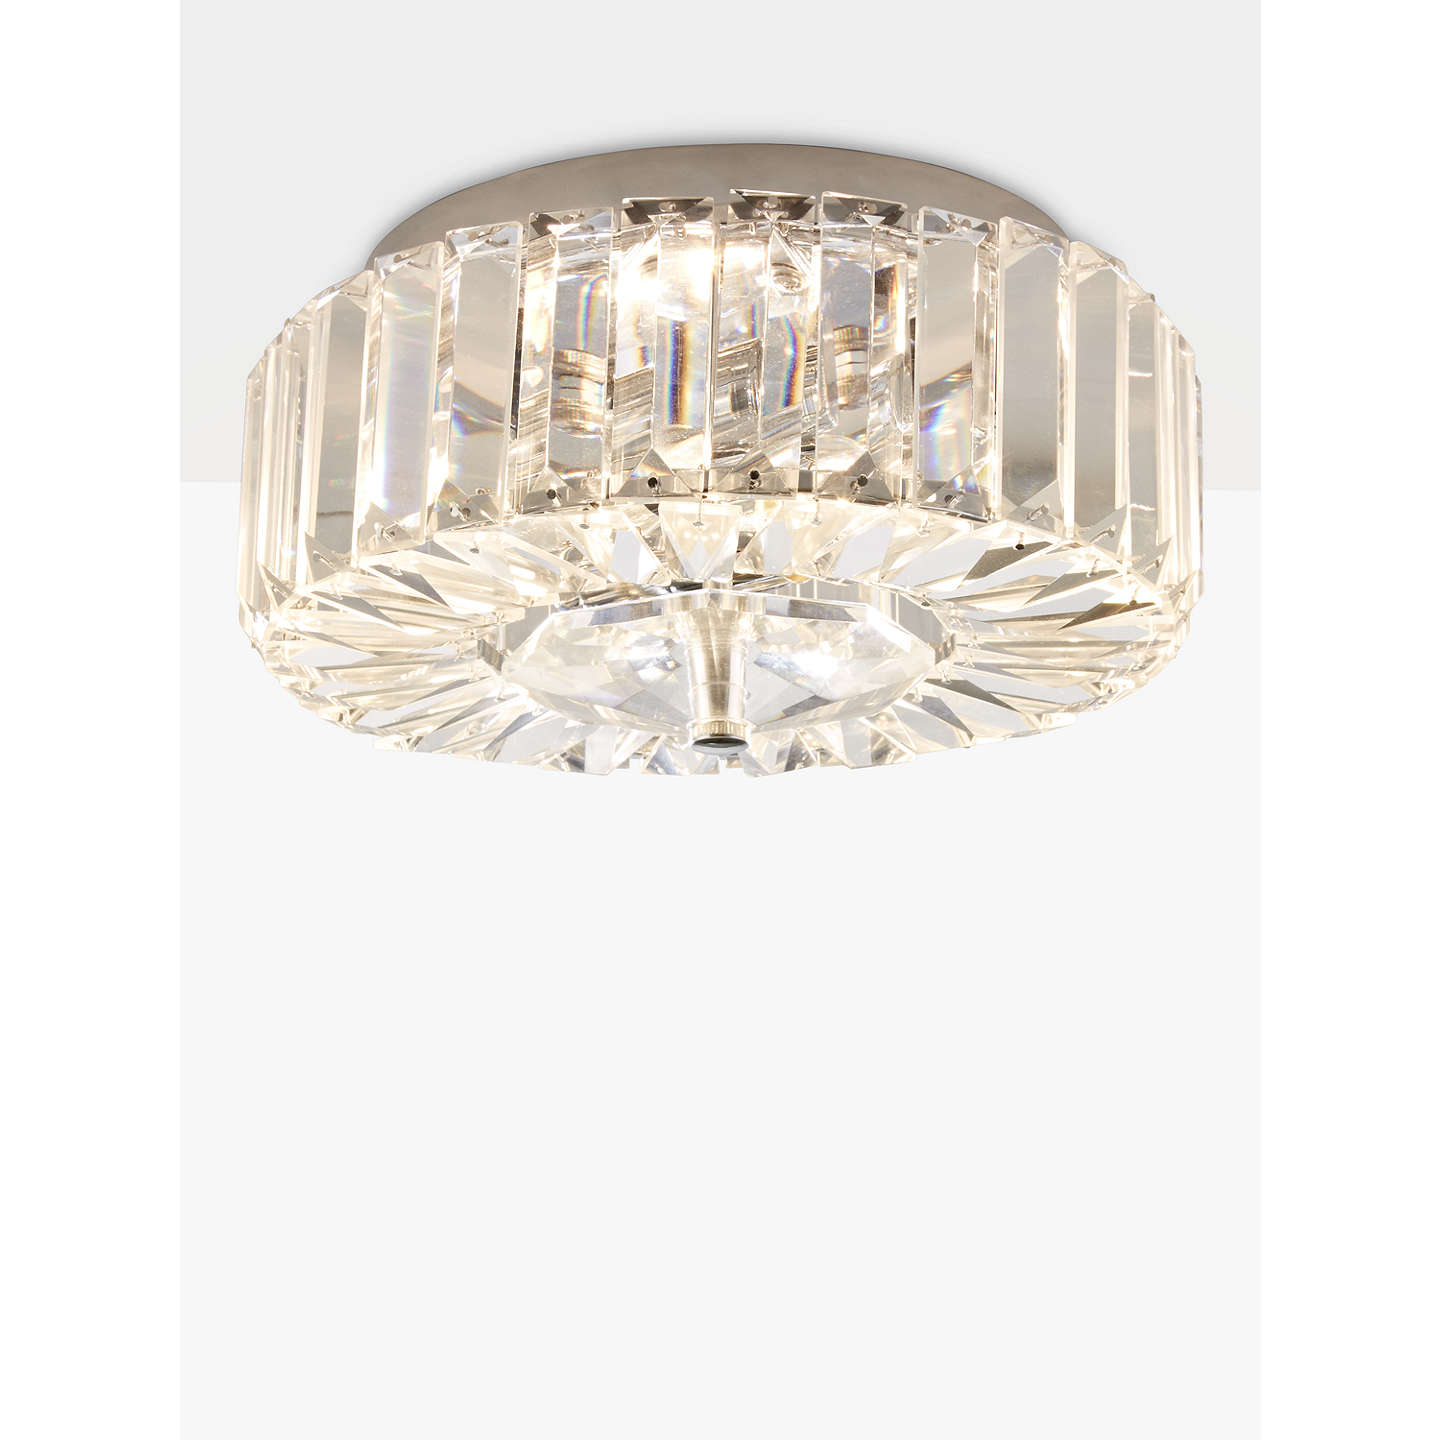 John lewis esme crystal flush ceiling light chrome at john lewis buyjohn lewis esme crystal flush ceiling light chrome online at johnlewis aloadofball Gallery